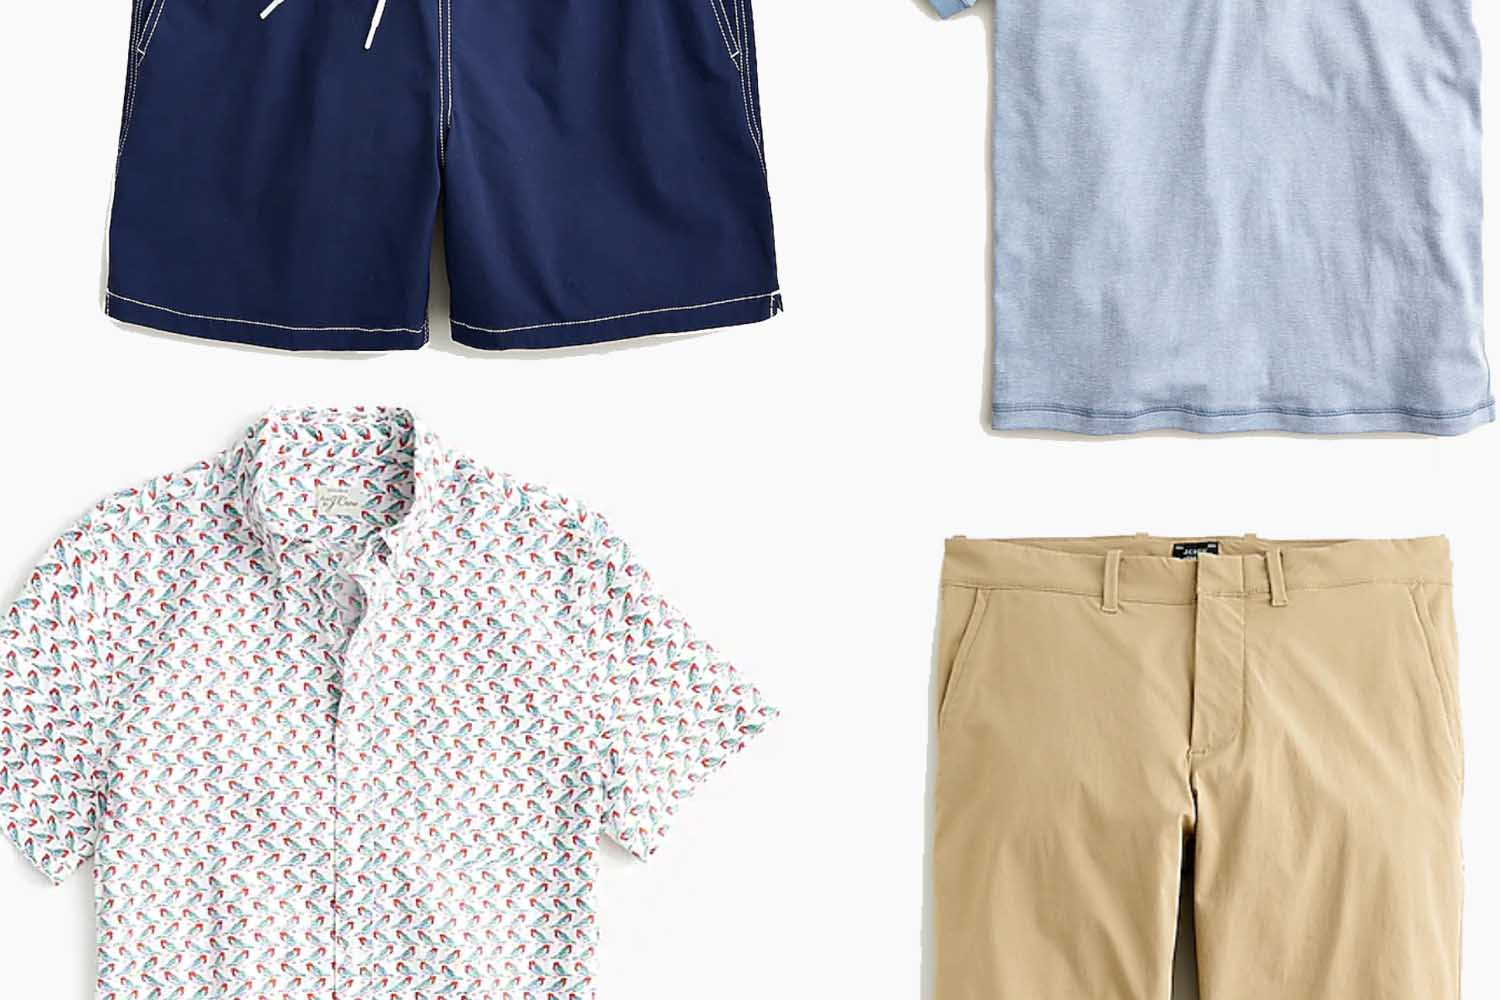 Deal: Save Up to 70% During J.Crew's Prime Time Event